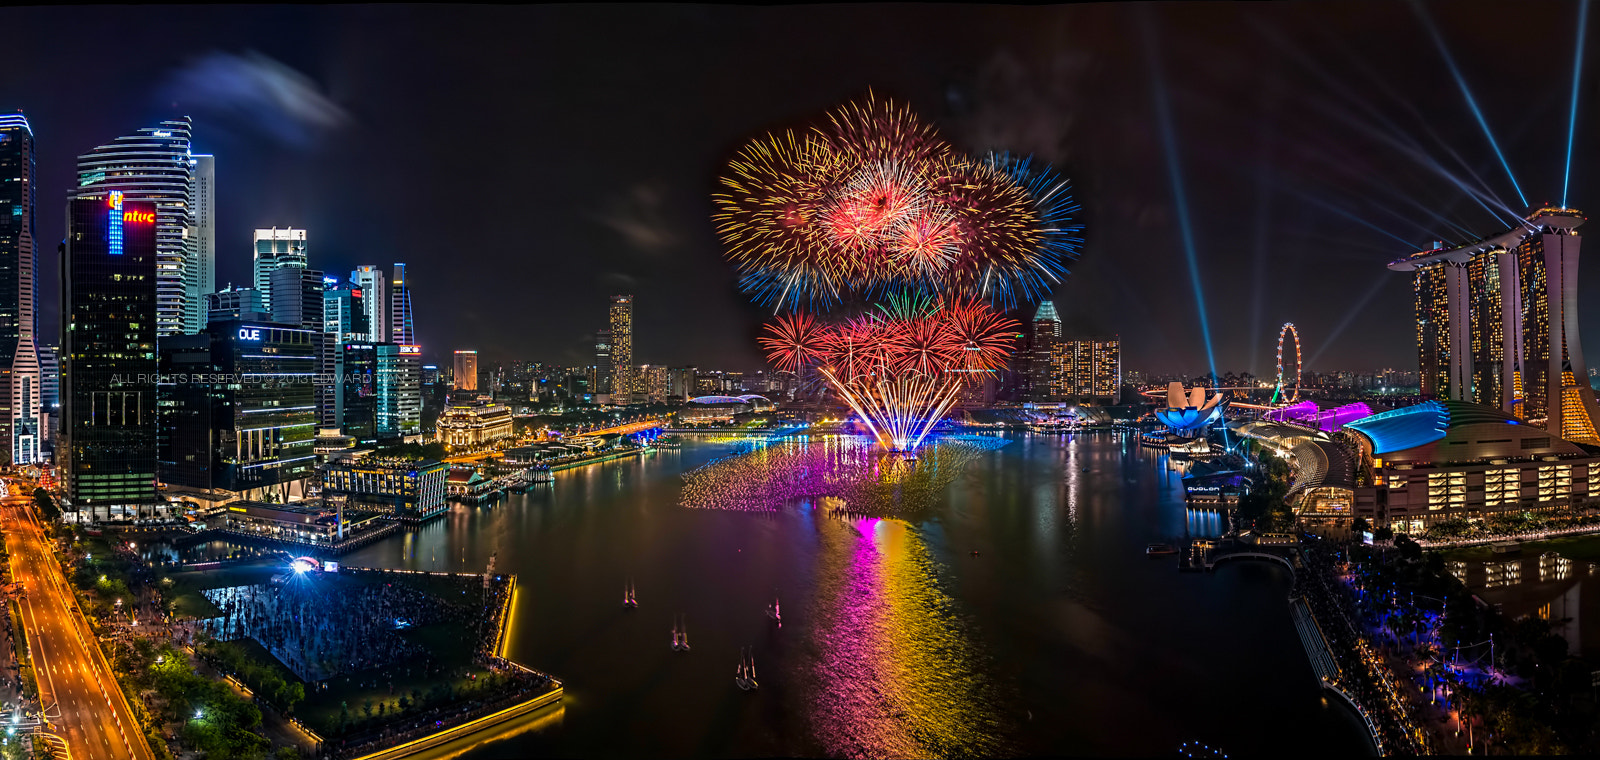 Photograph Singapore 2013 by Edward Tian on 500px